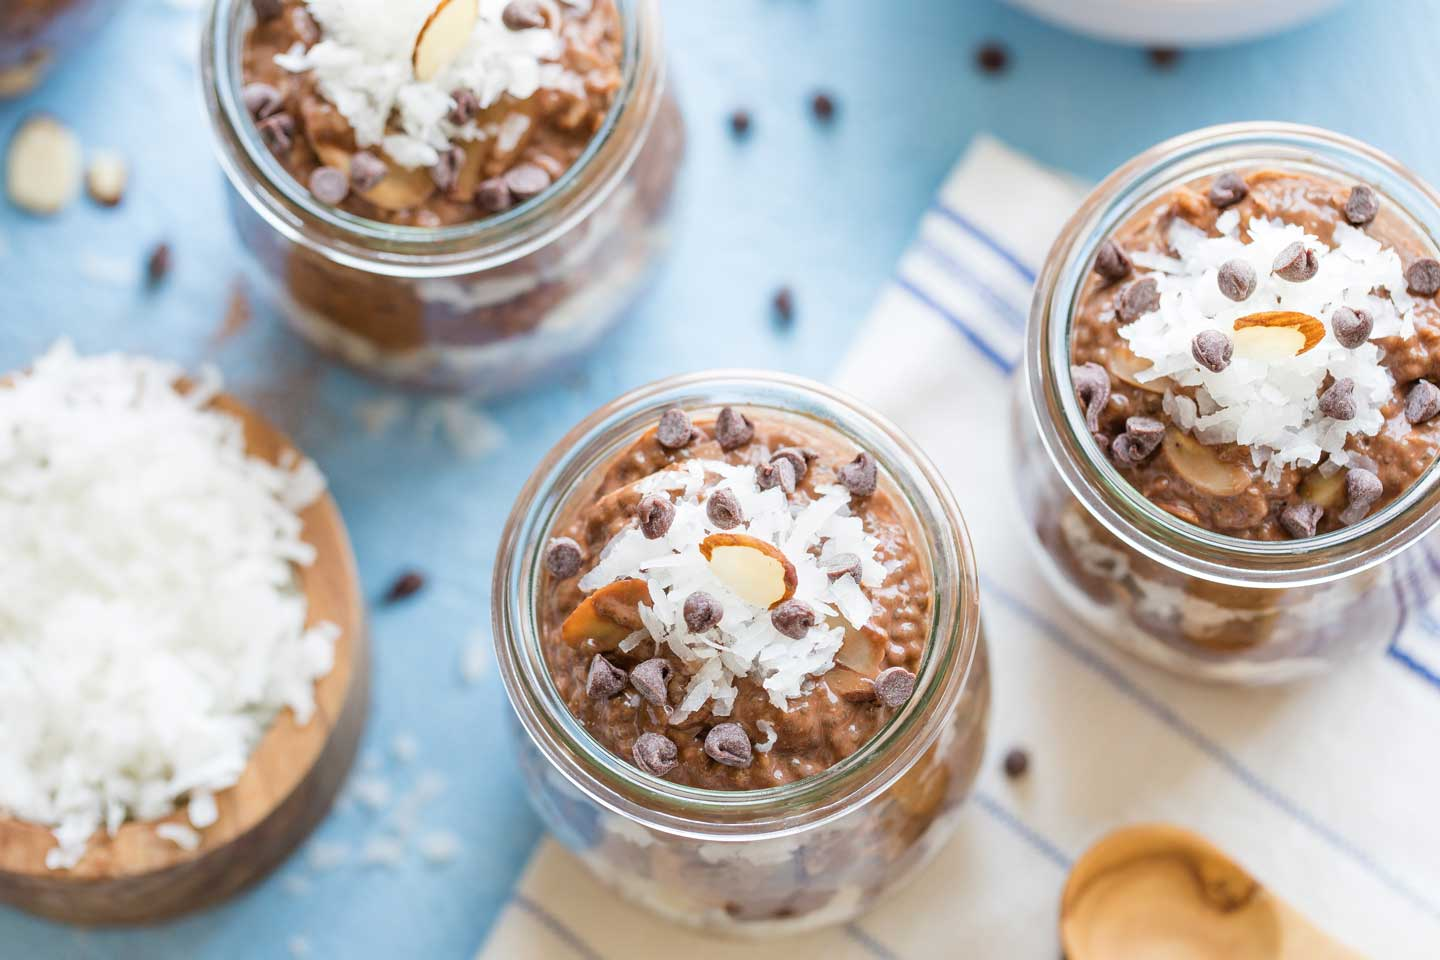 Overhead shot of three little glass meal prep jars layered with chia pudding, sprinkled with chocolate chips, coconut and almonds - with a wooden bowl of coconut alongside.